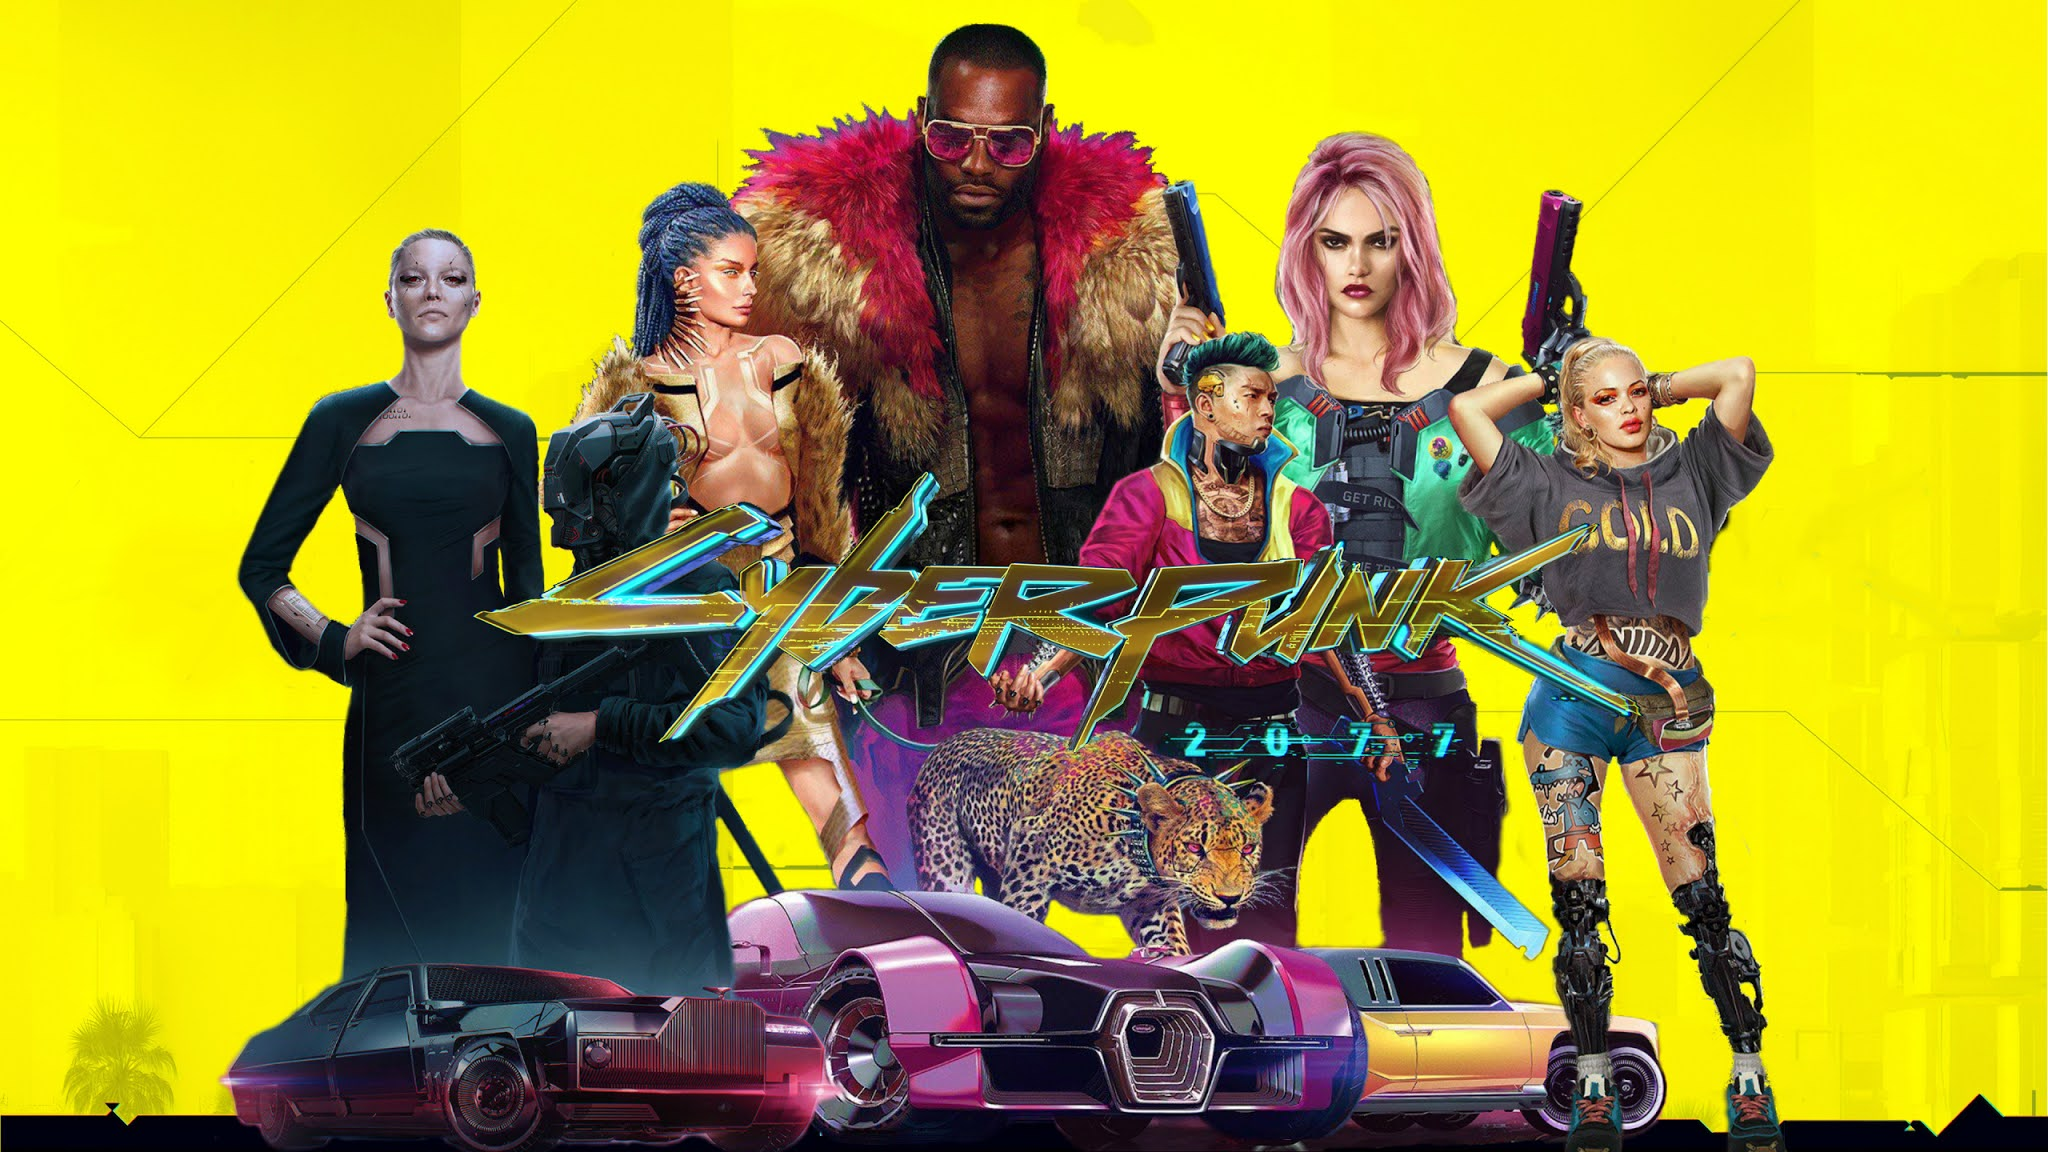 """Cyberpunk 2077. """"Dirty Business"""" - how to get through?"""